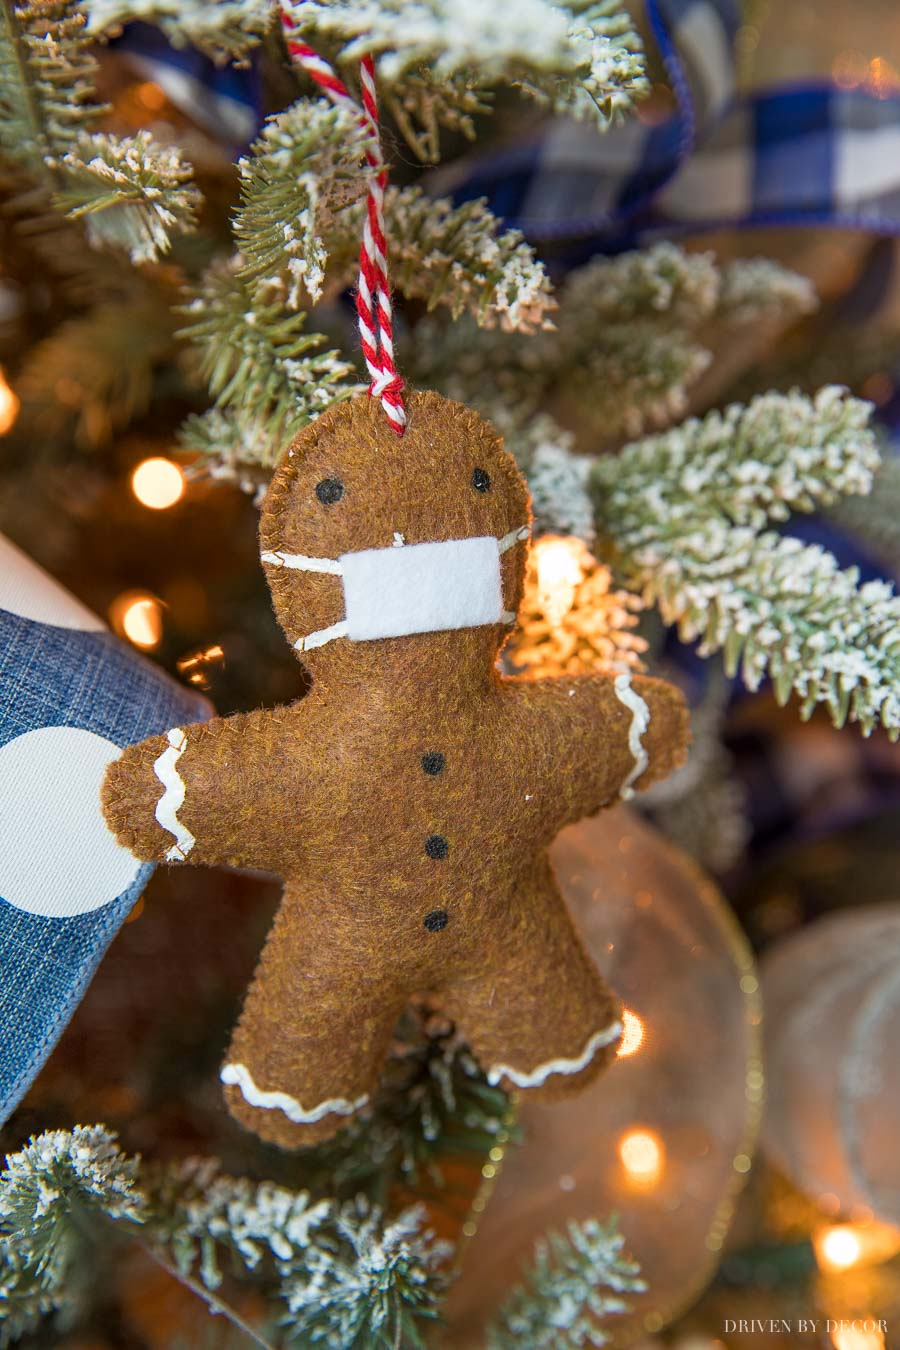 The perfect Christmas ornament for 2020! Love this handmade gingerbread man!